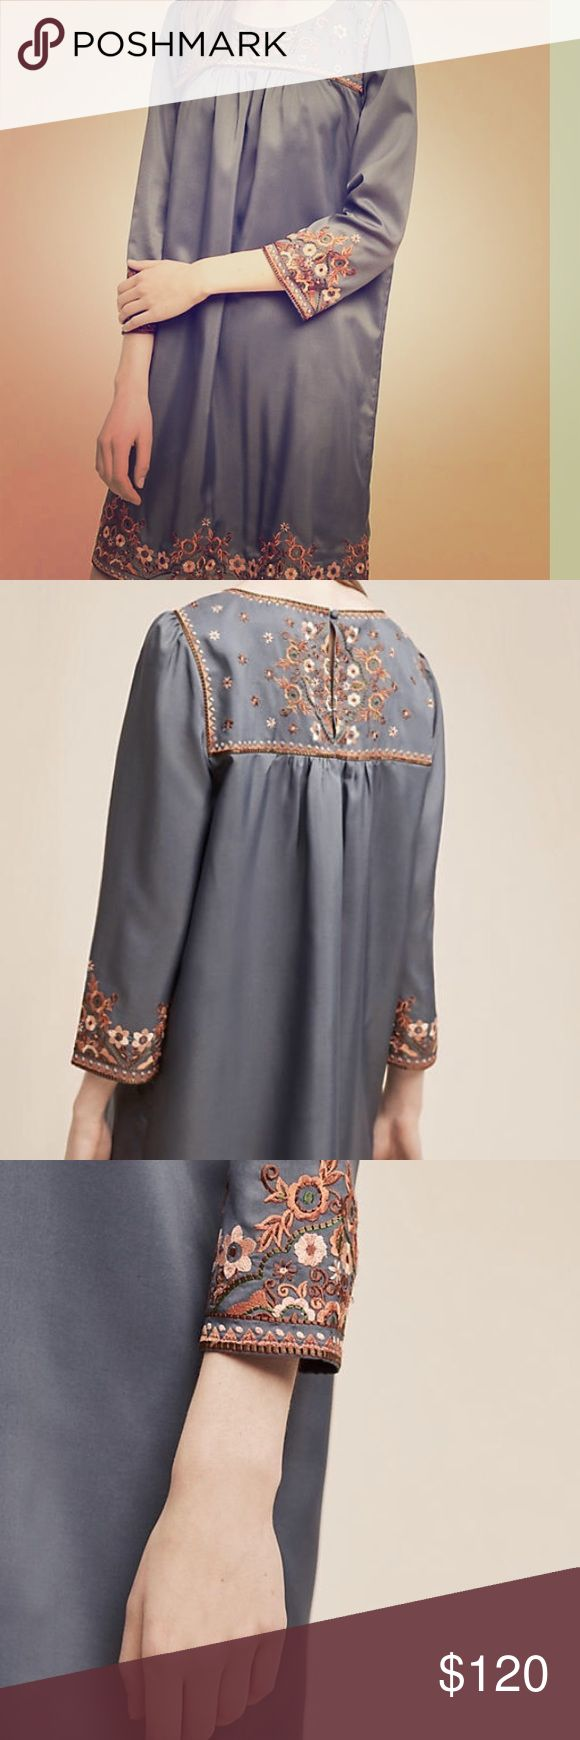 Anthropology dress small nwt sold out Anthropology dress Anthropologie Dresses Mini